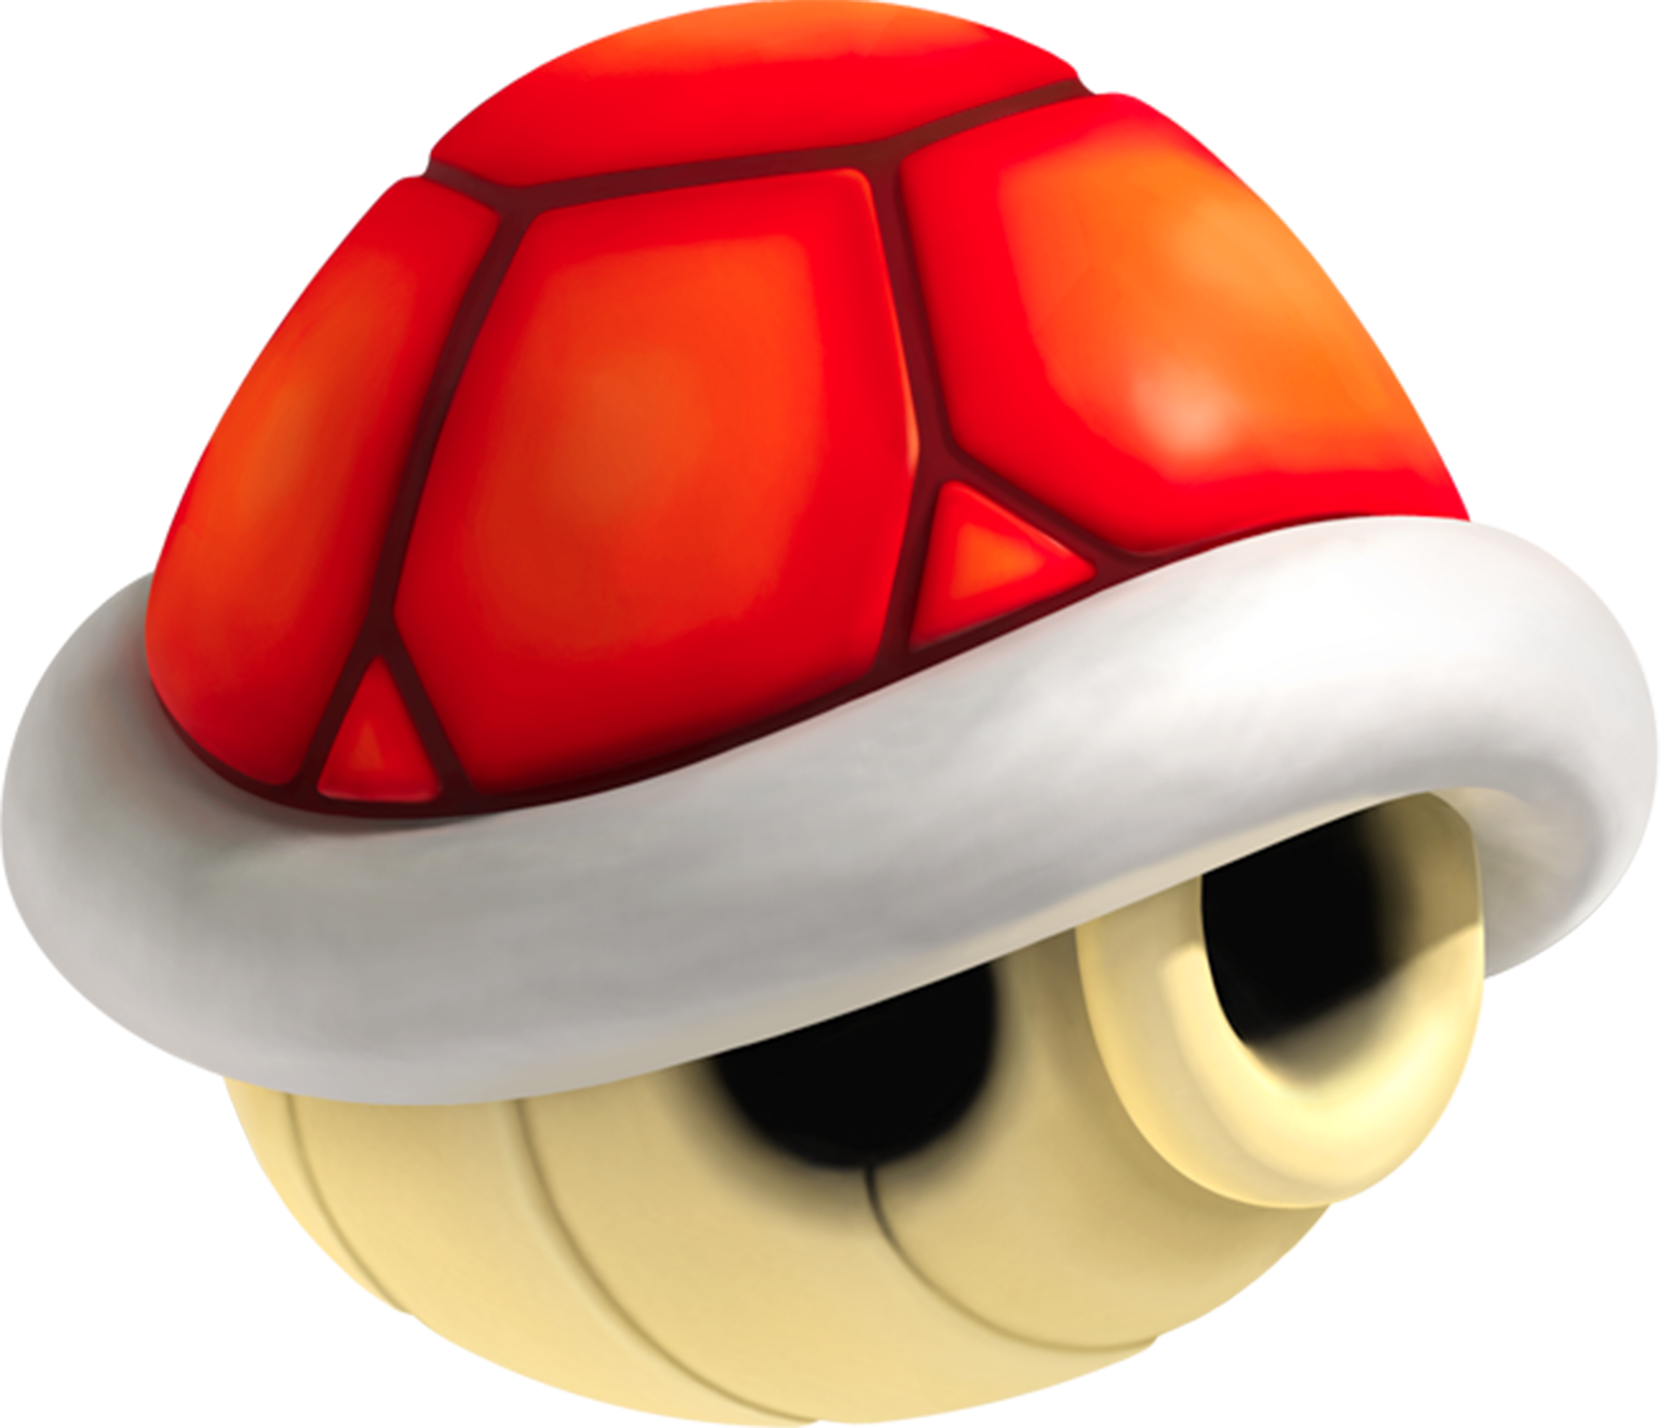 Image result for mario kart red shell